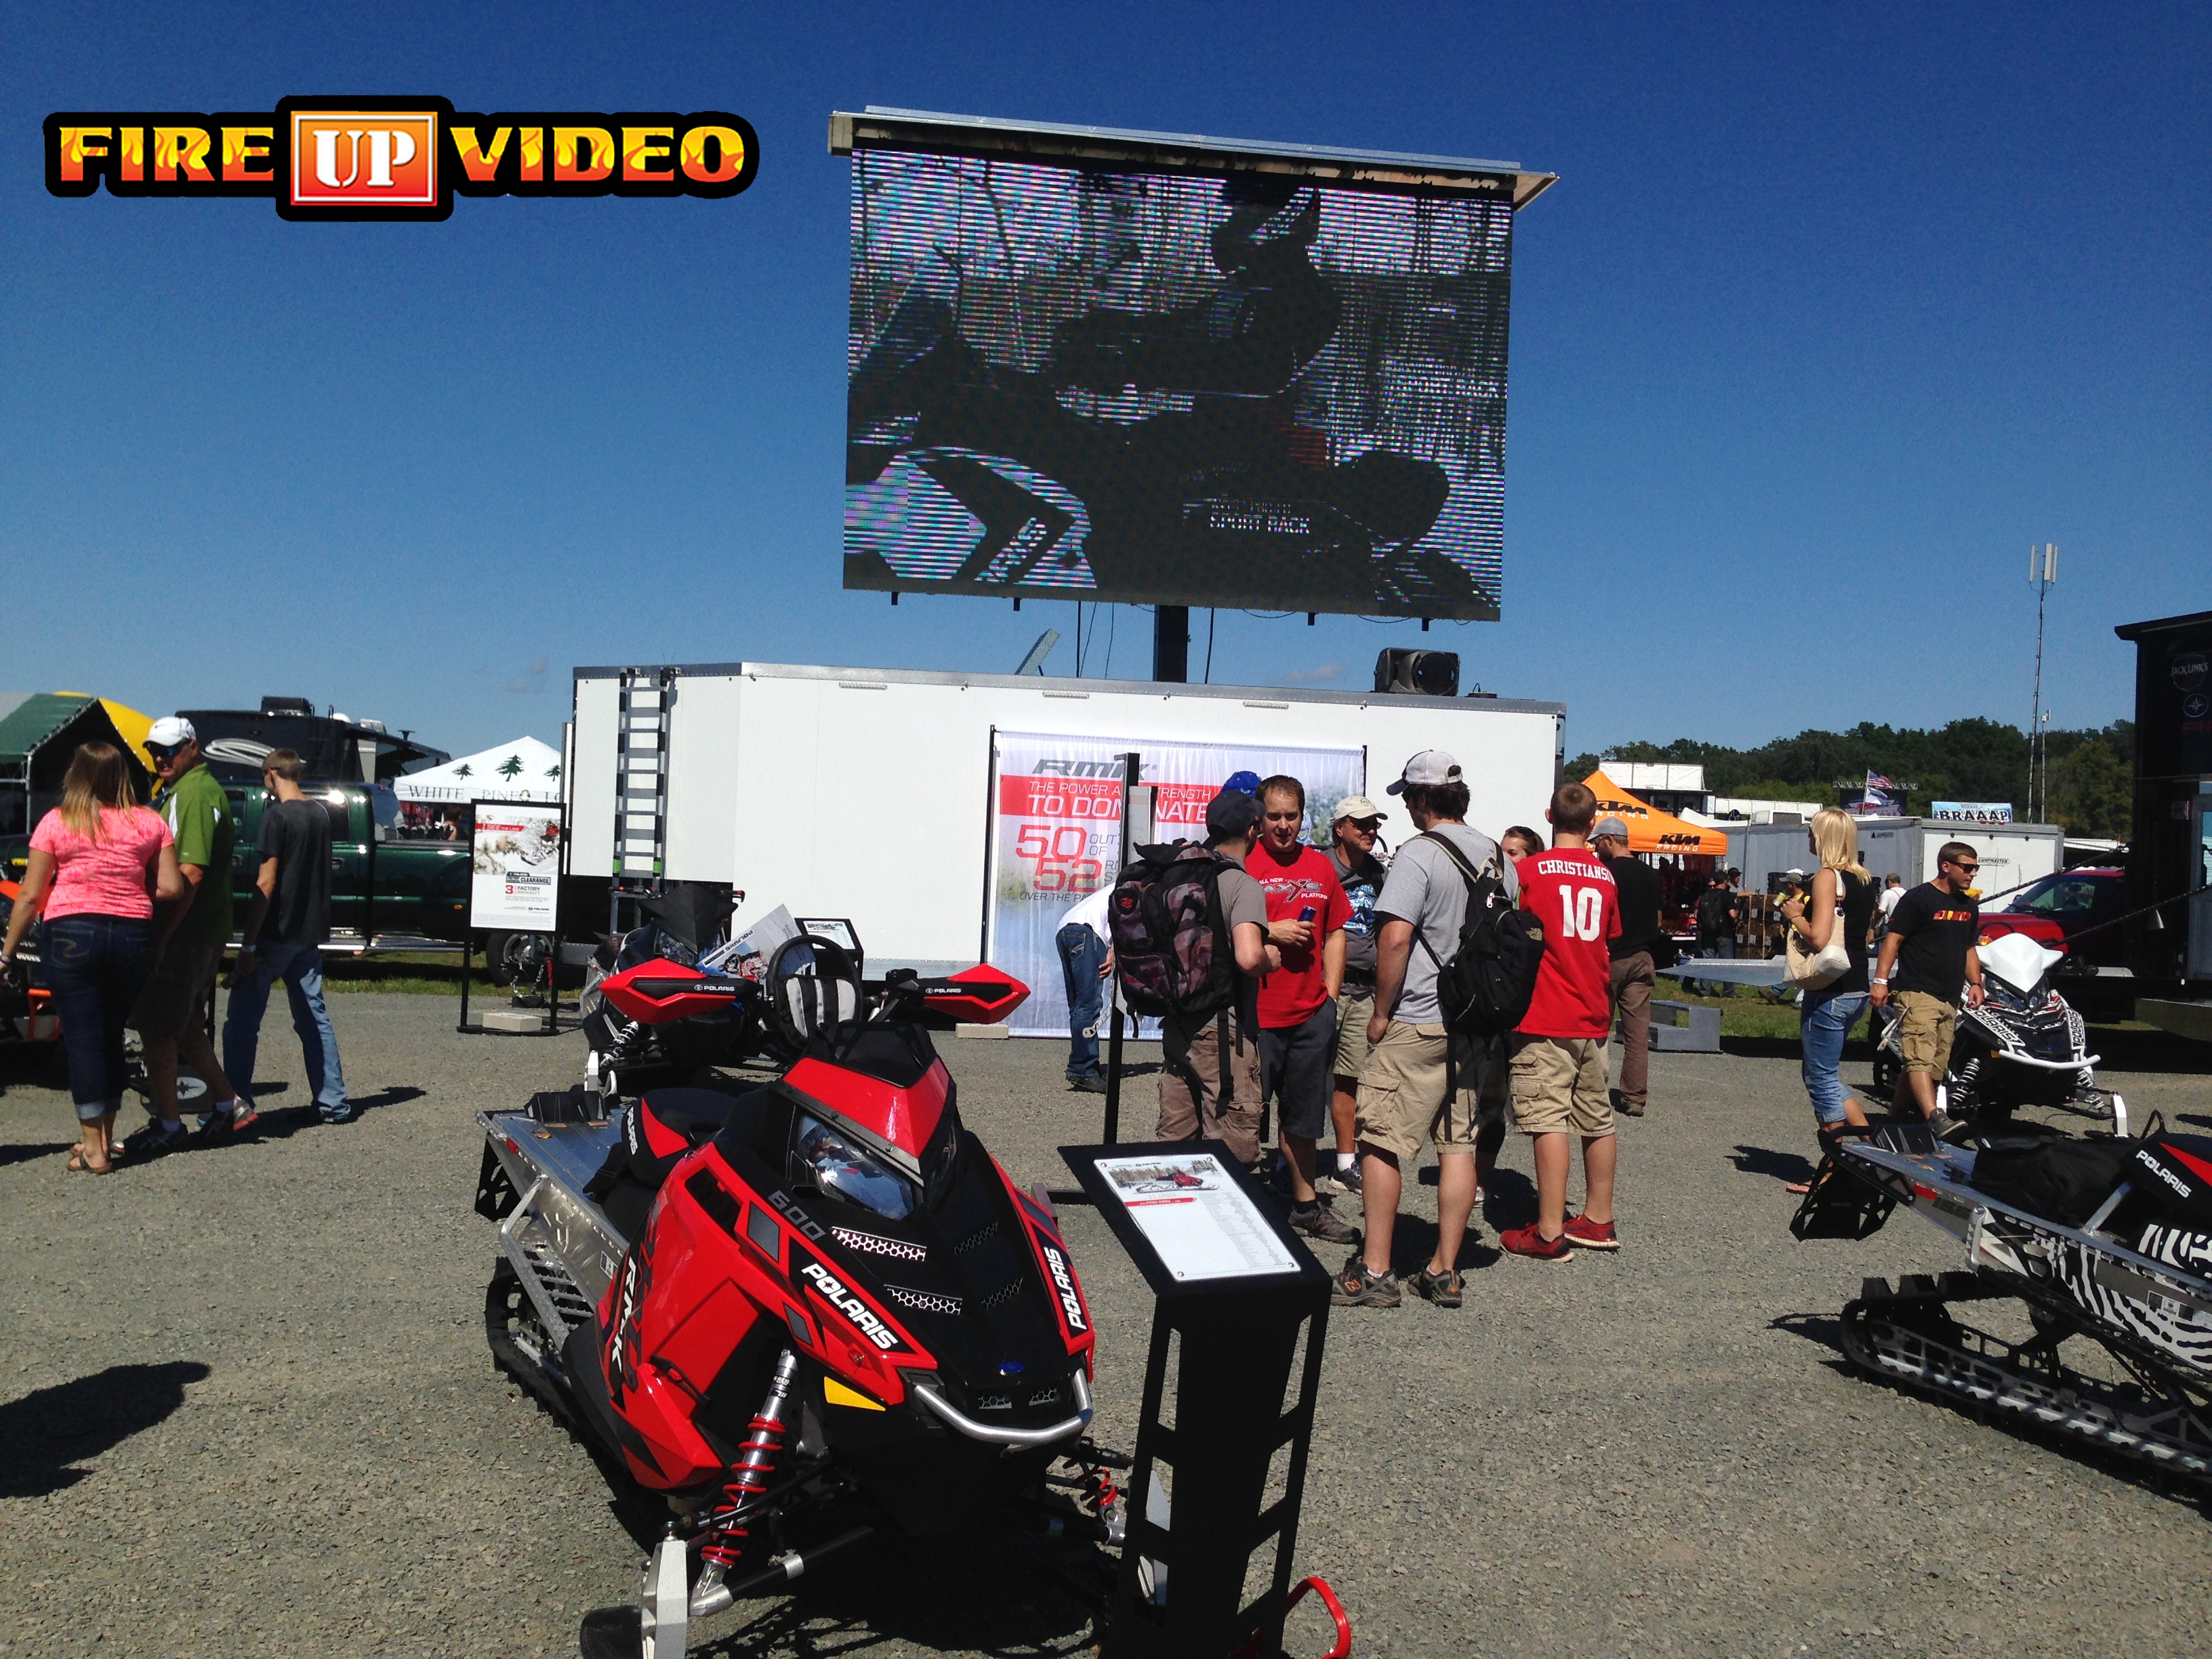 Mobile Video Wall Rental For Events In Aurora Il Mobile